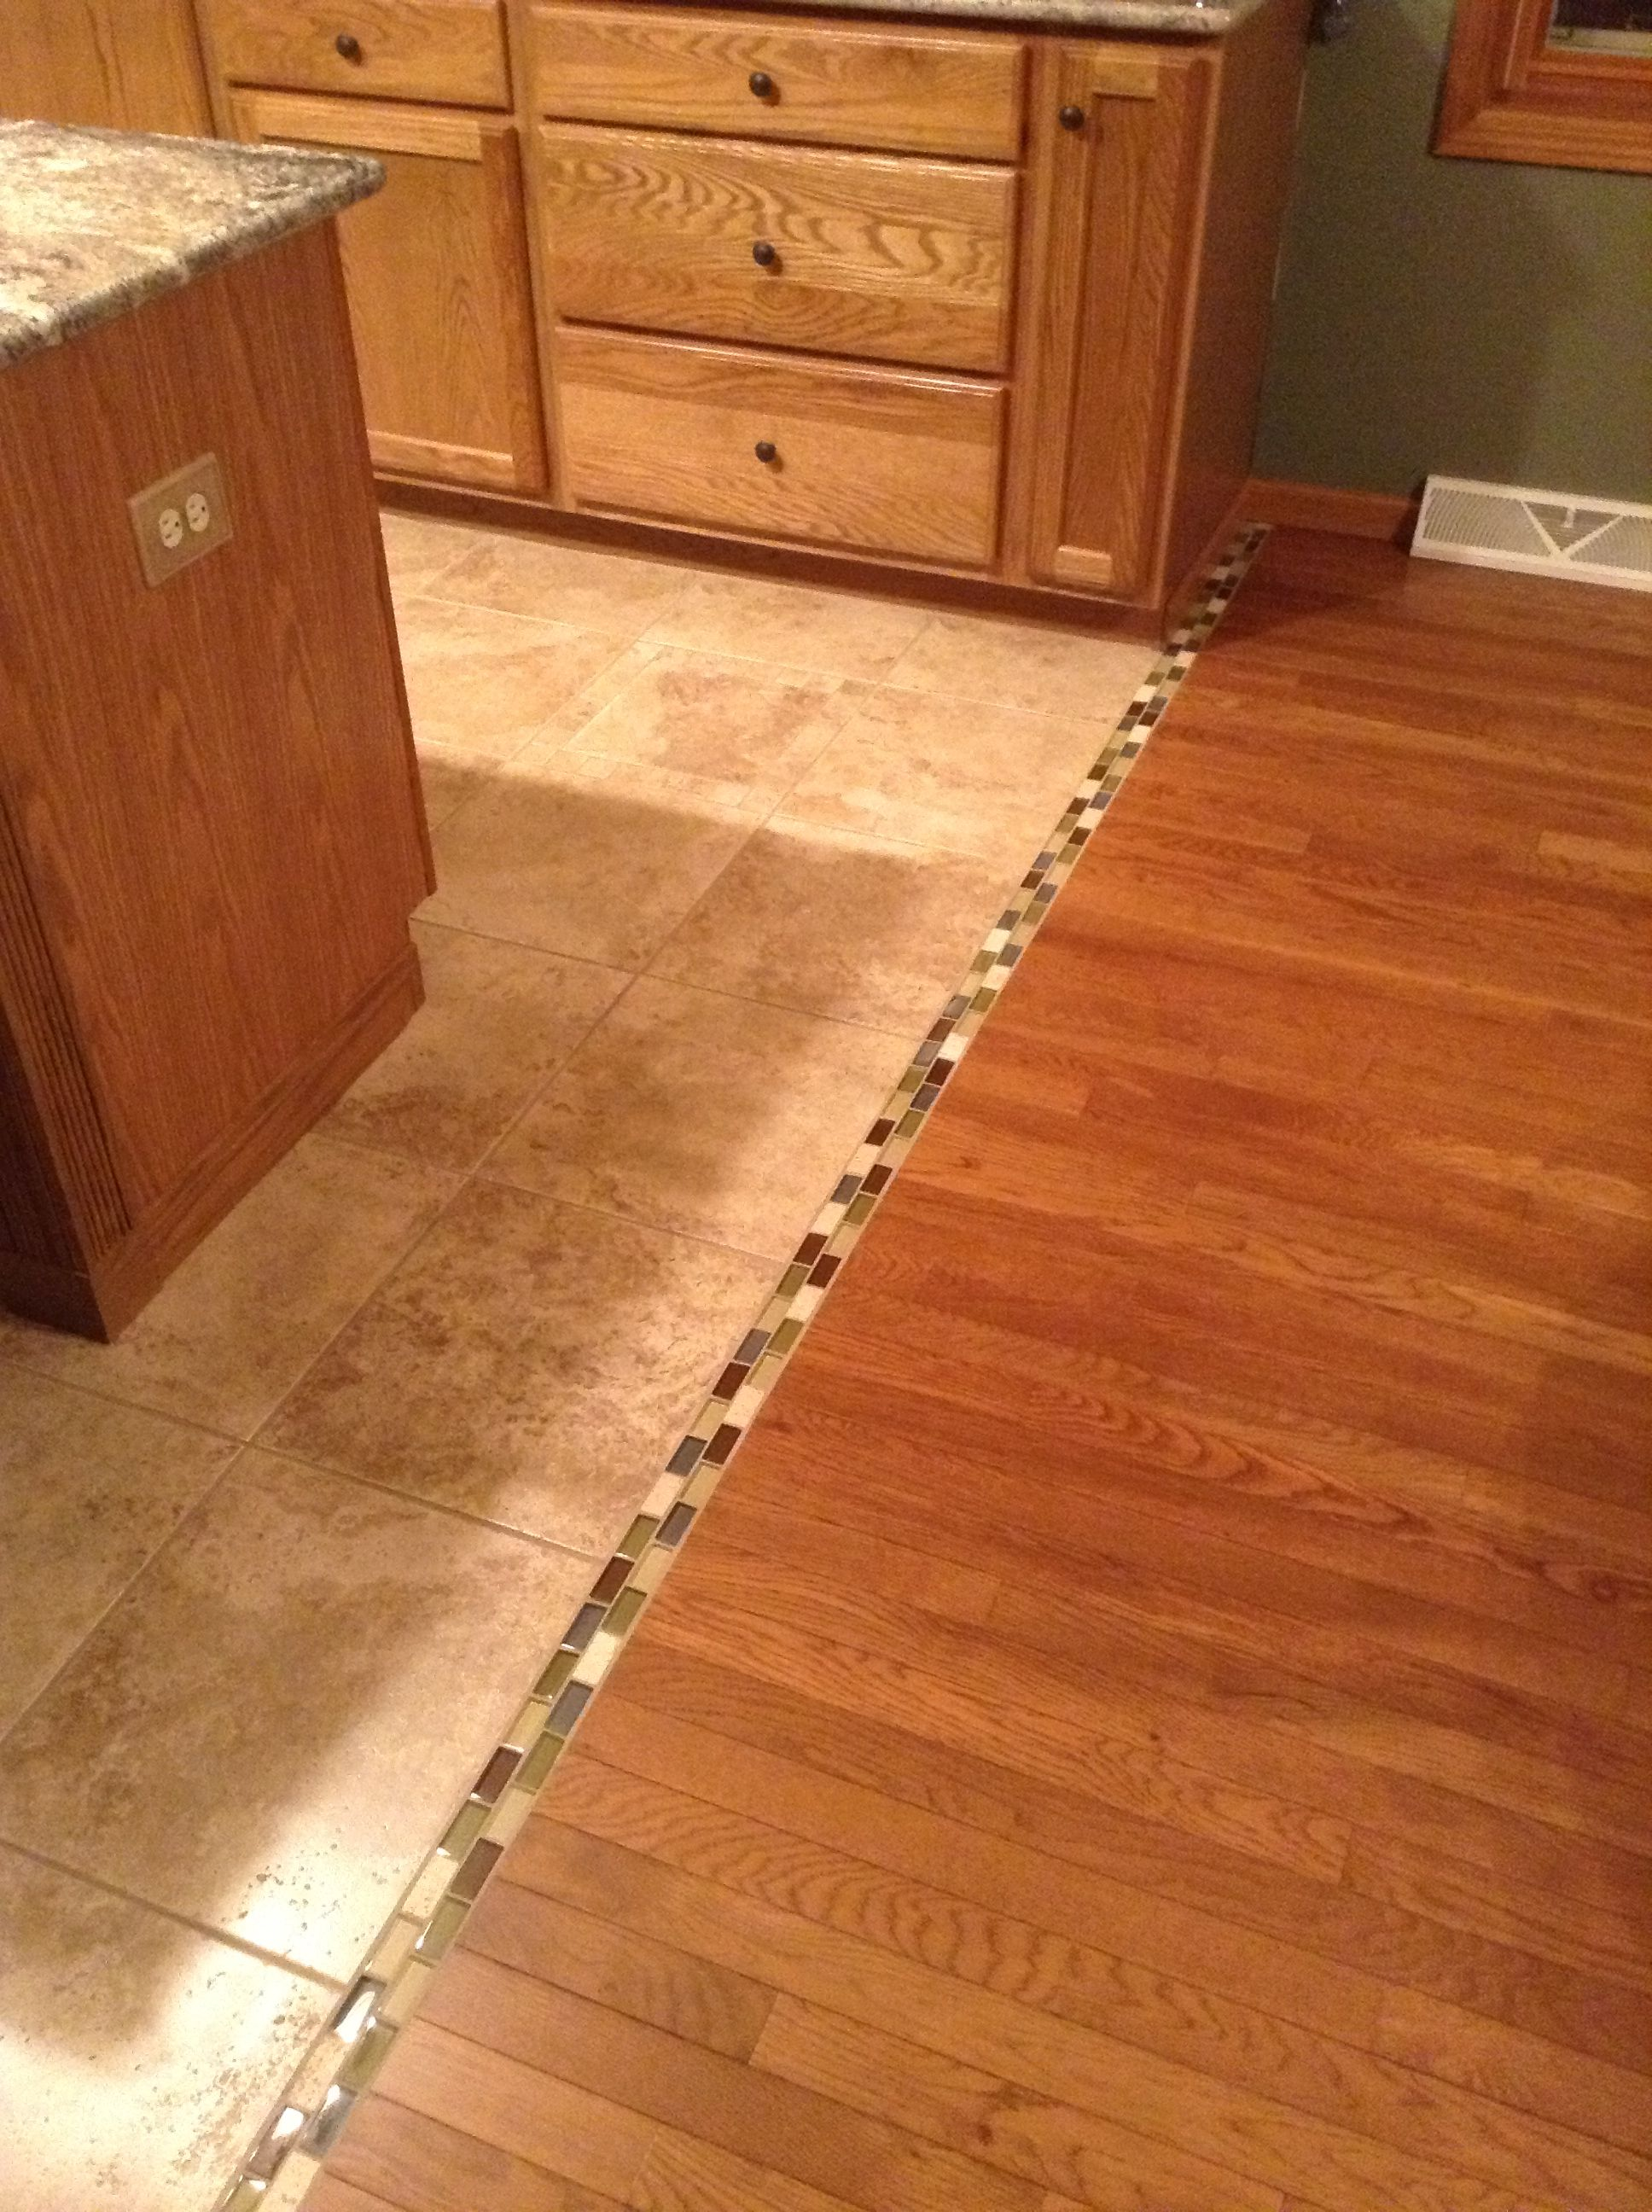 Transition between hardwood and tile floor we should do for Hardwood floors or carpet